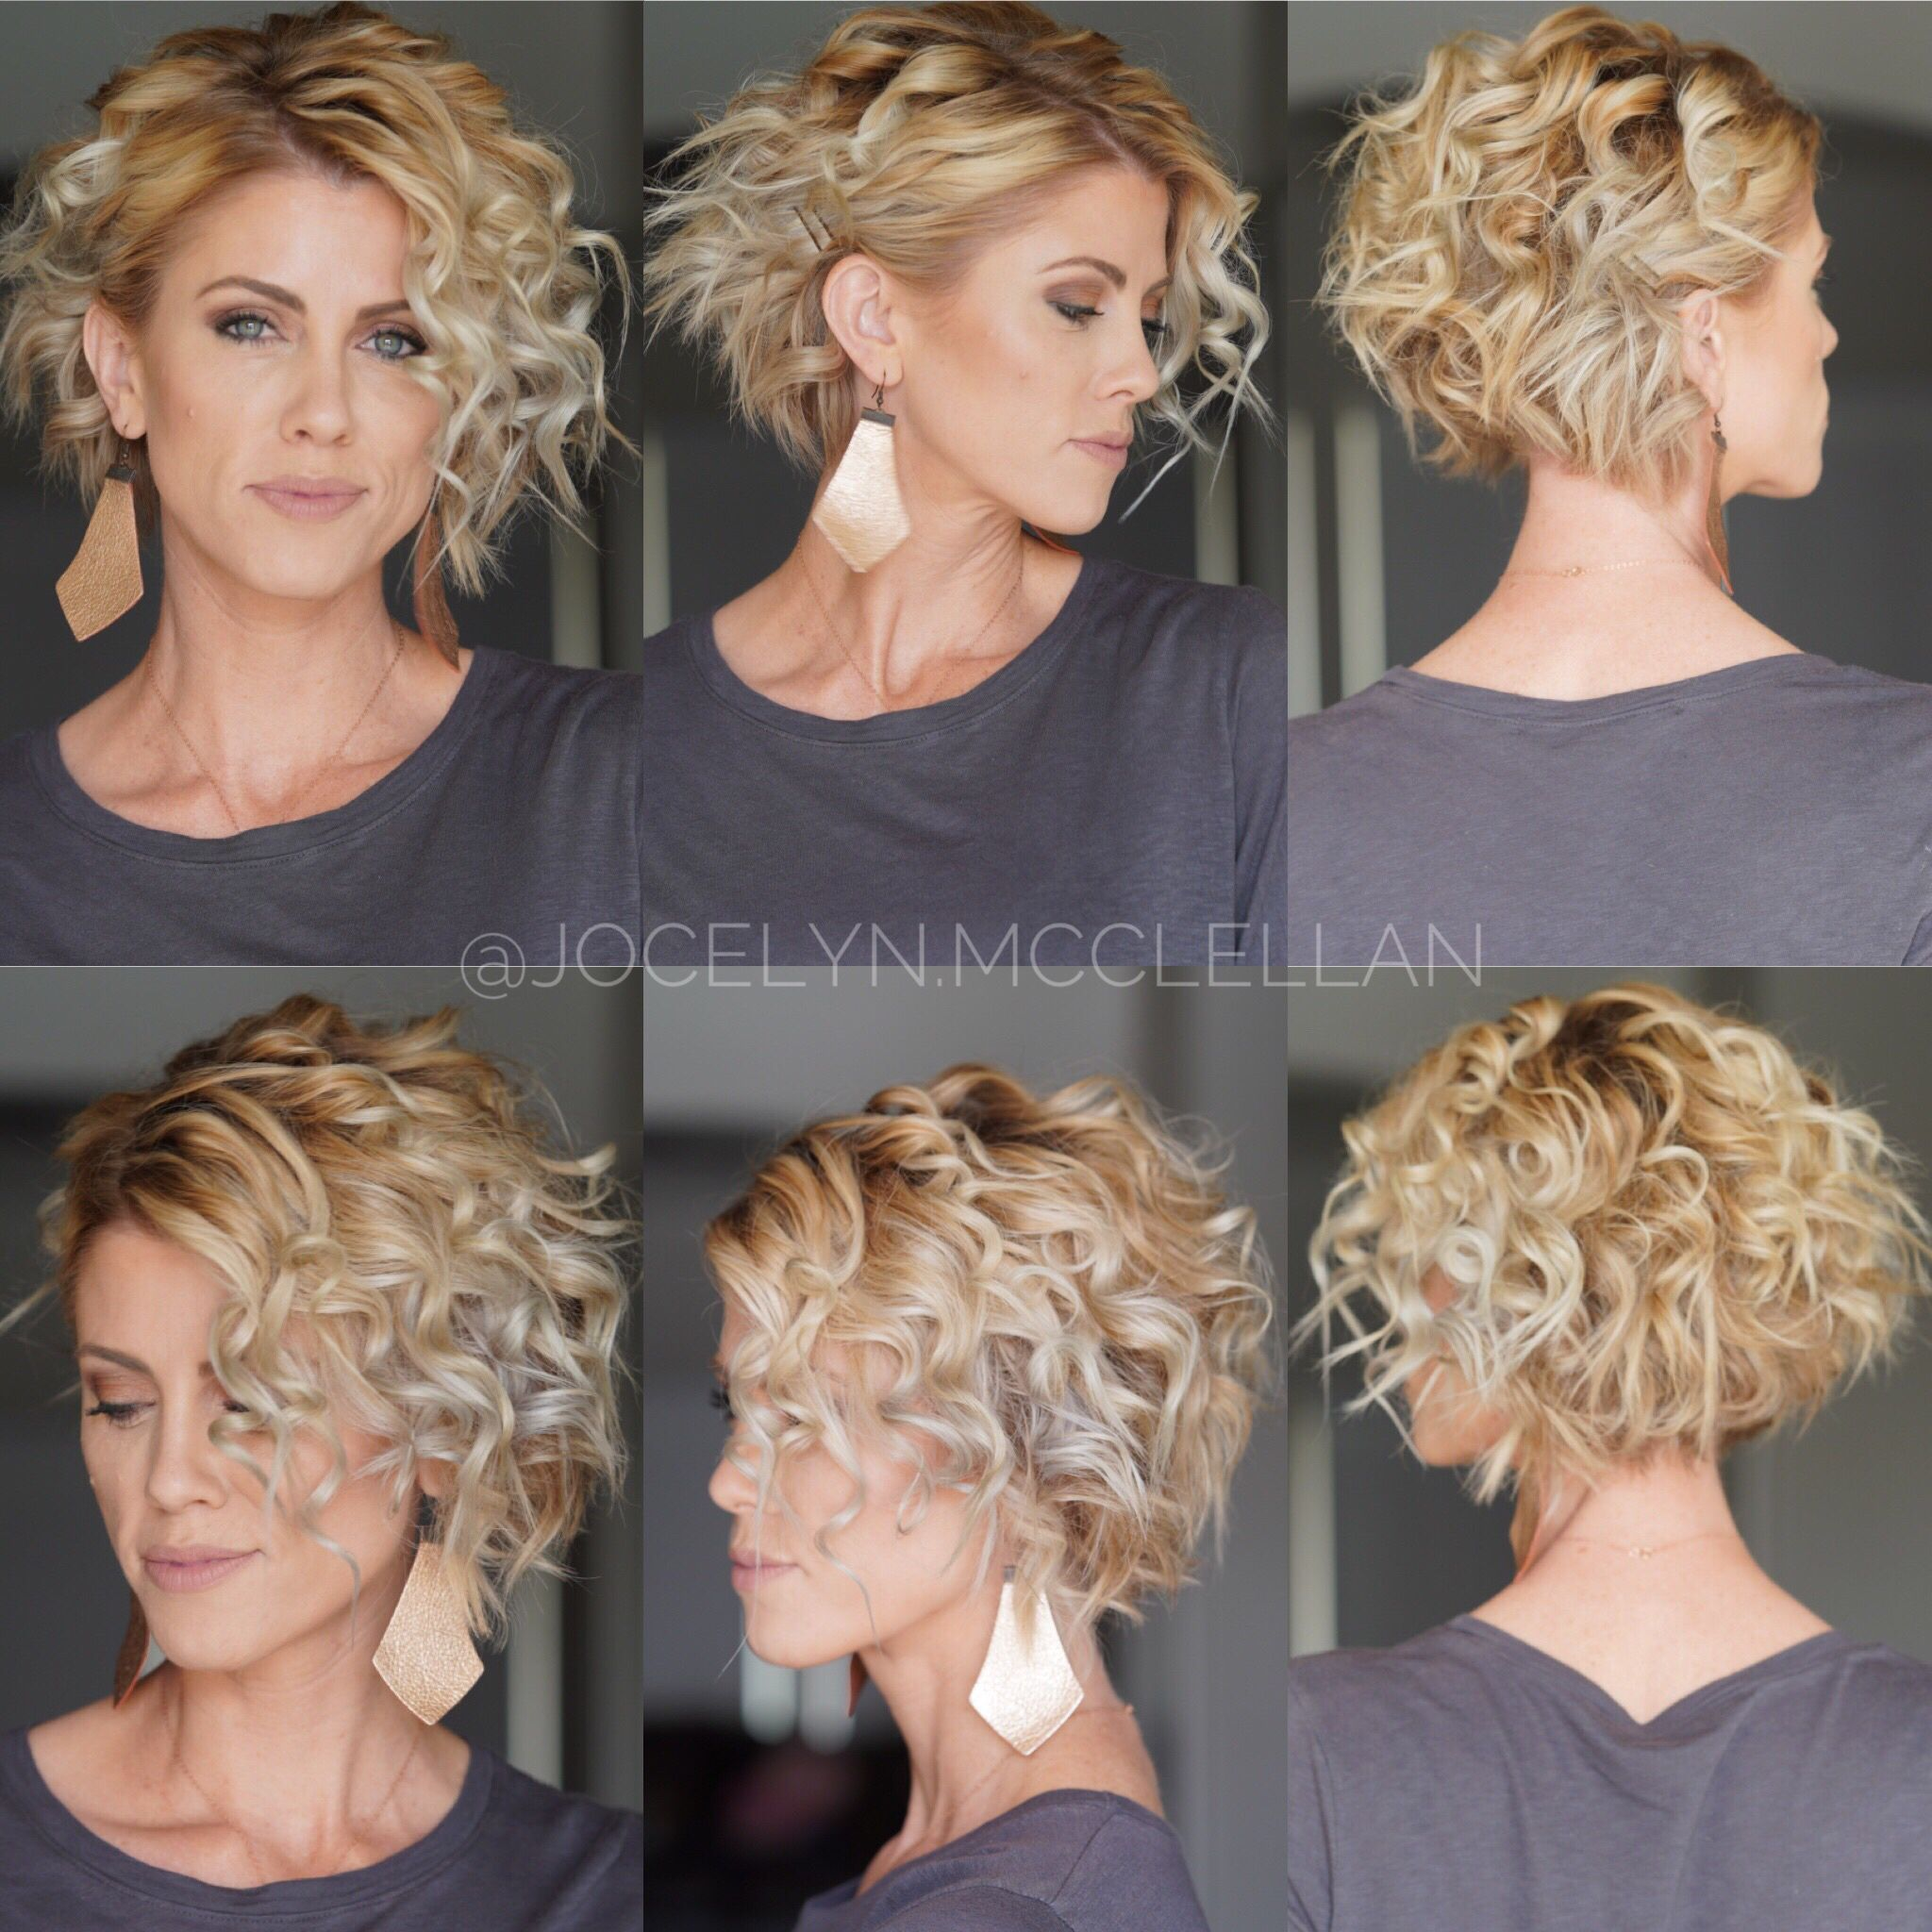 Second Day Short Hairstyle New 2019 In 2020 Curling Wand Short Hair Flat Iron Short Hair How To Curl Short Hair